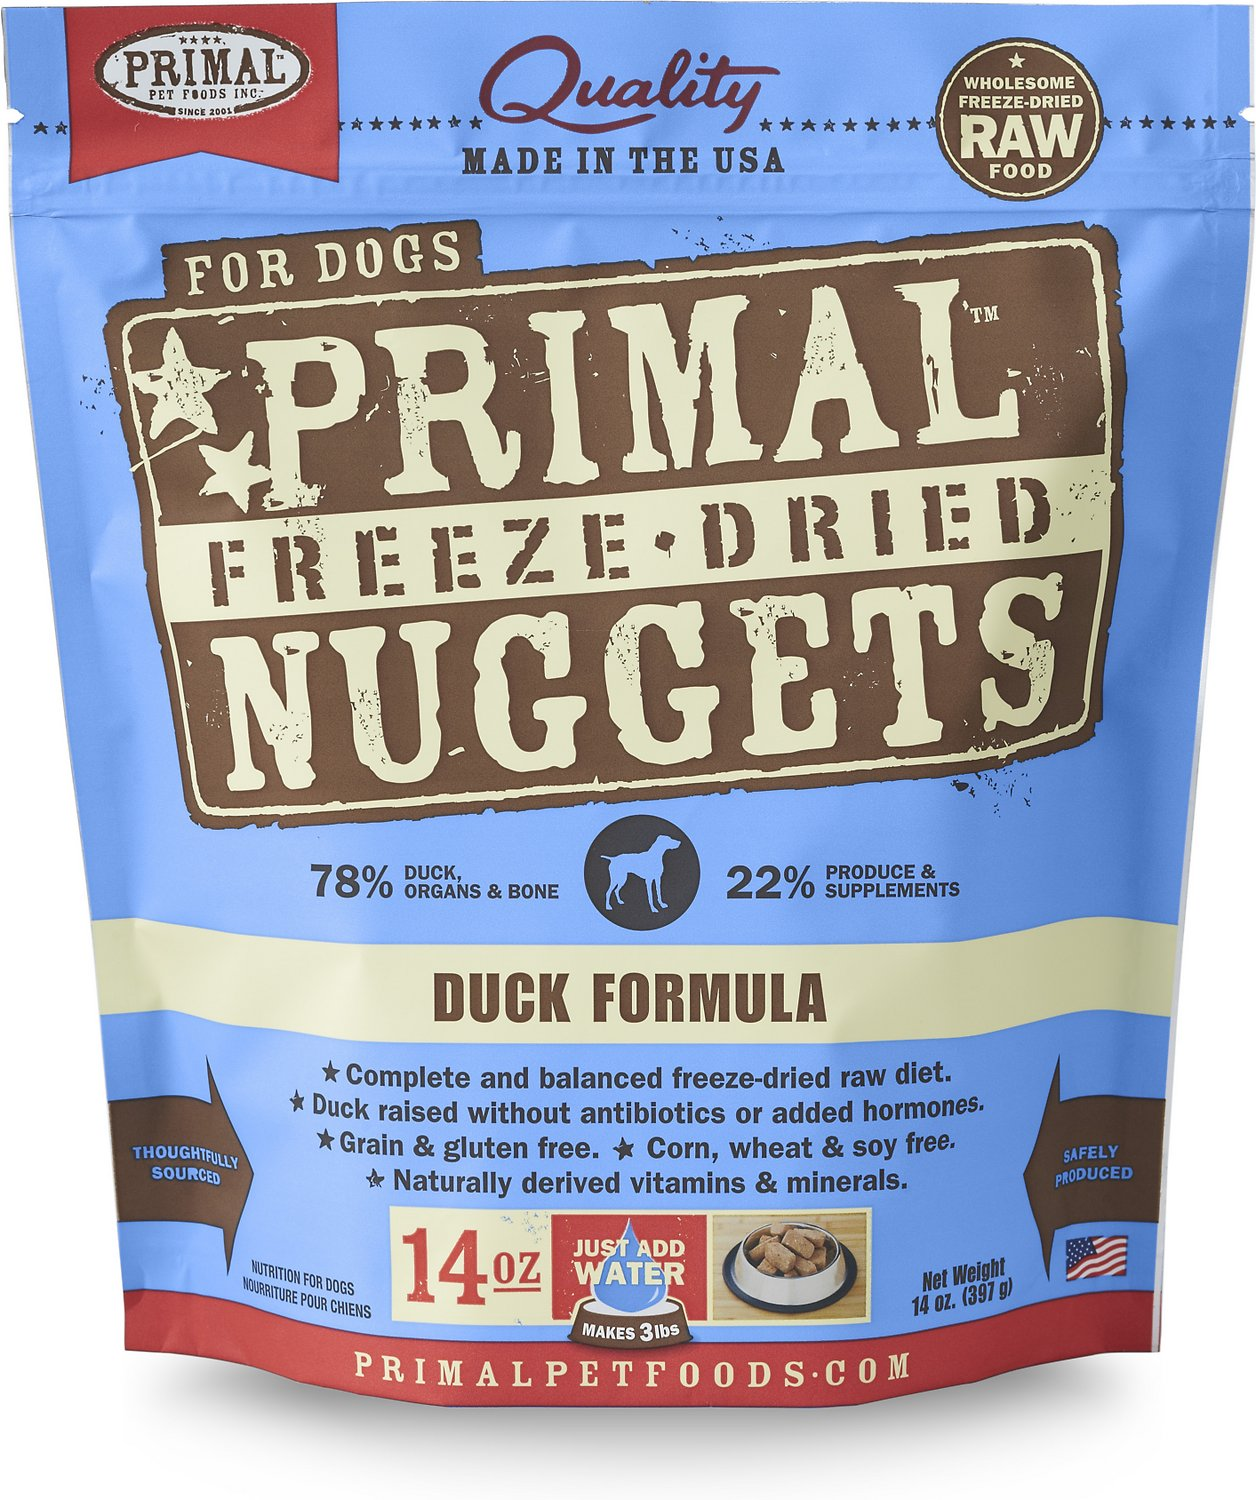 Primal Duck Formula Nuggets Grain-Free Raw Freeze-Dried Dog Food Image